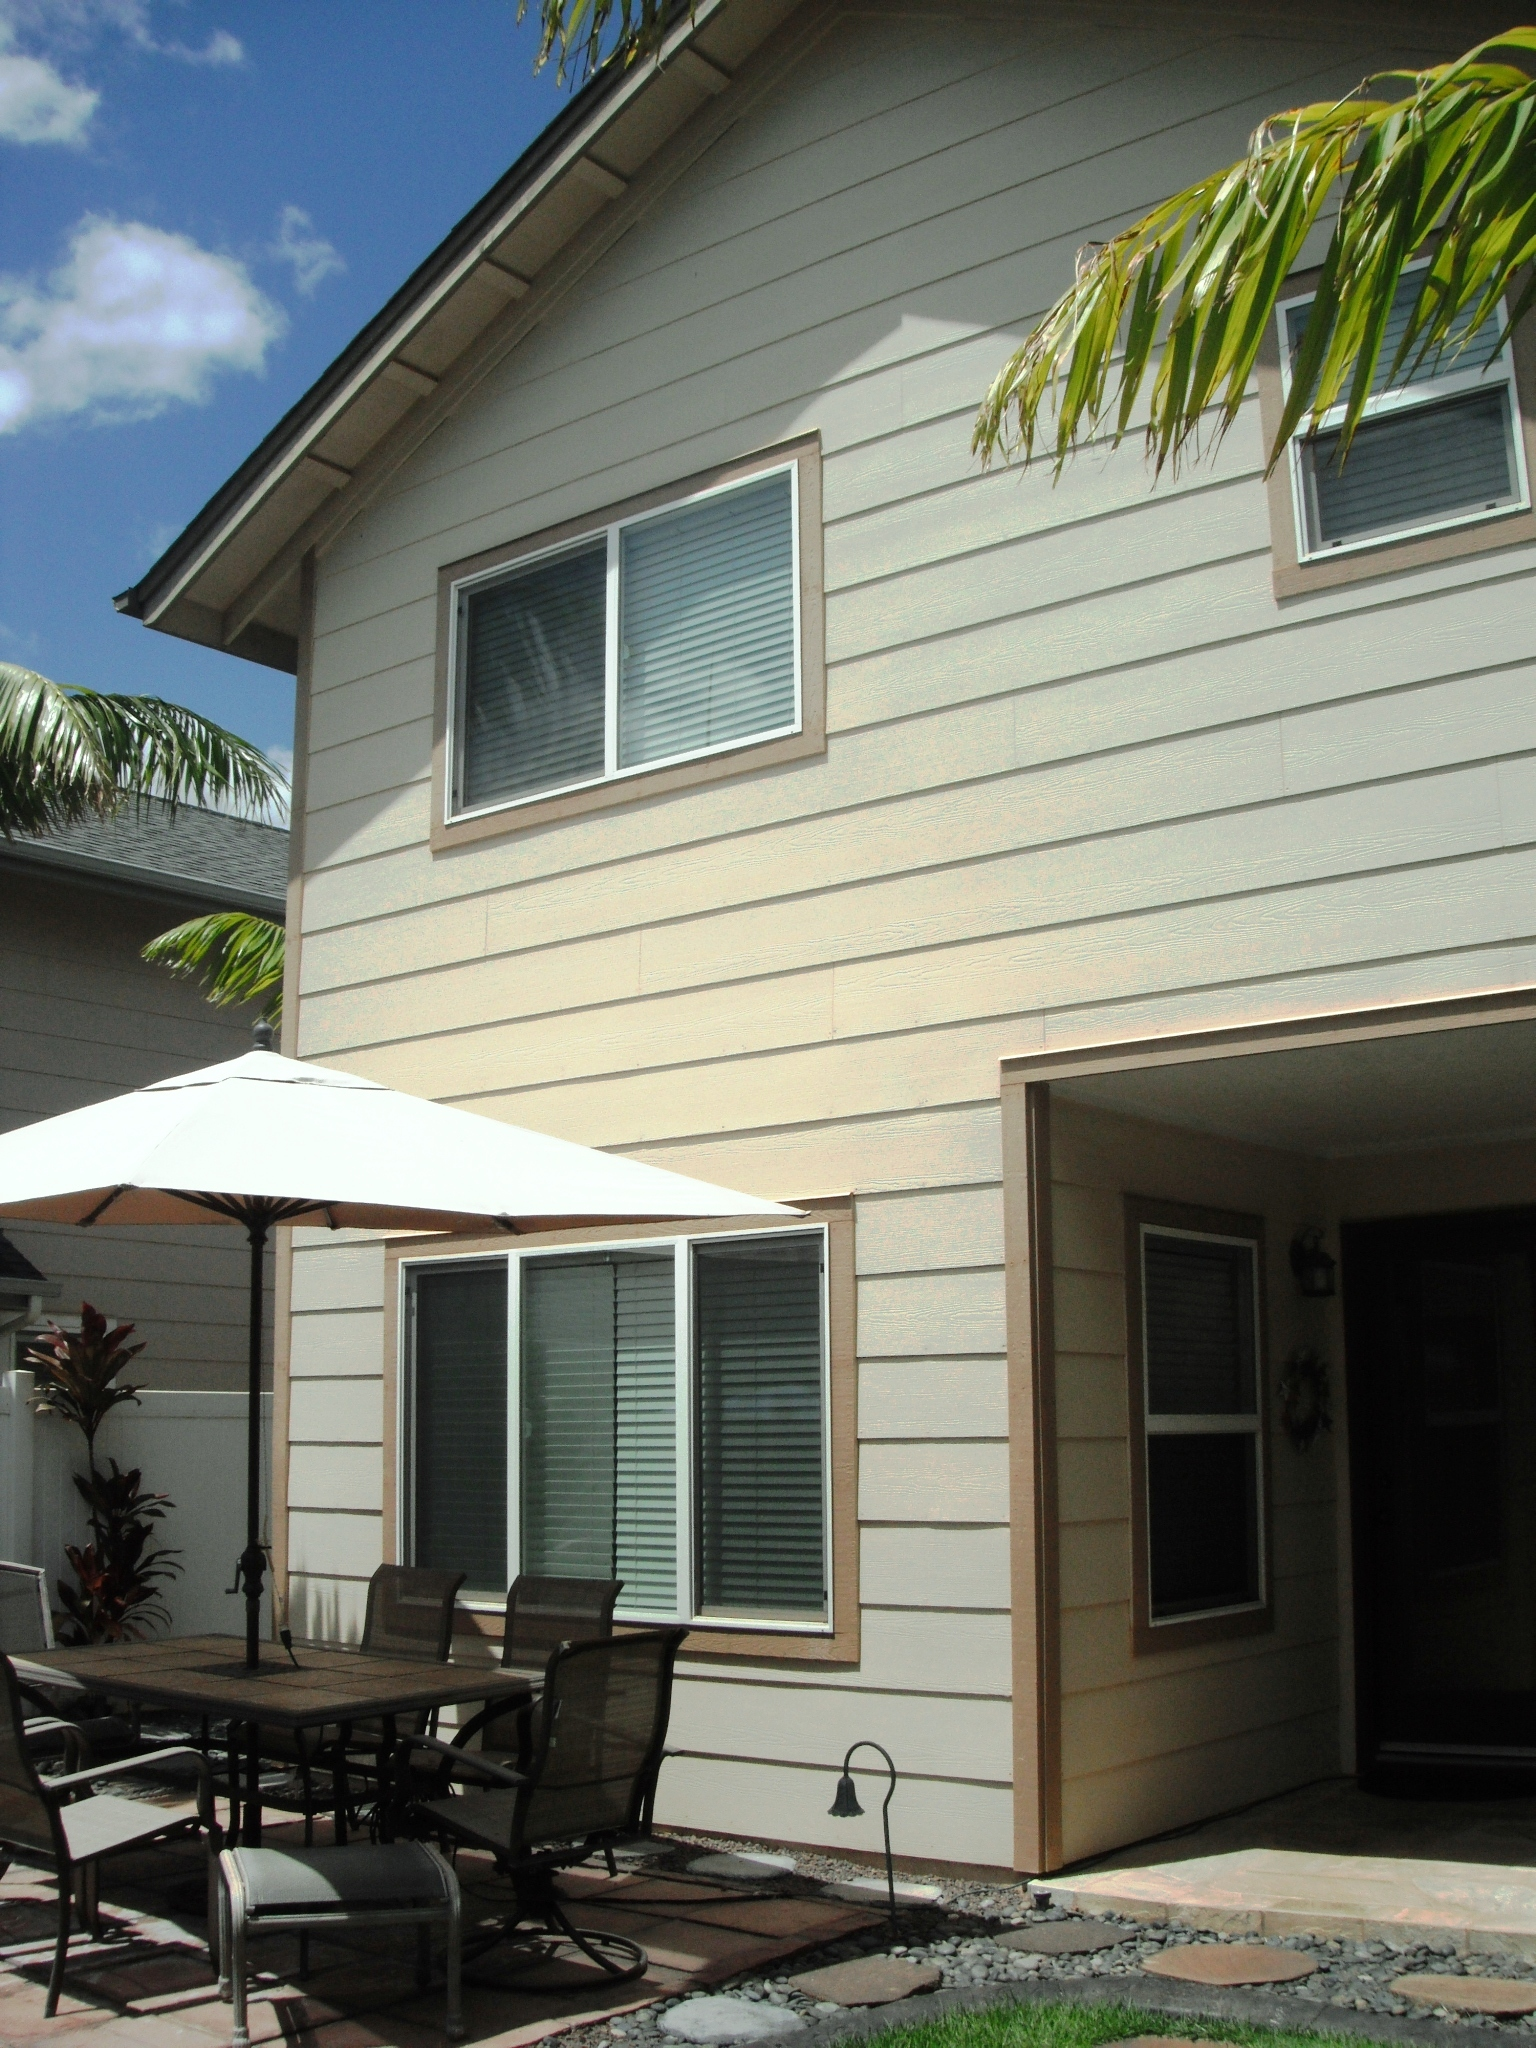 kapolei singles This single-family home located at 91-1371 kekahili st, kapolei hi, 96707 is currently for sale and has been listed on trulia for 82 days this property is listed by nrt hawaii for $549,000 91-1371 kekahili st has 3 beds, 2 baths, and approximately 1,632 square feet.